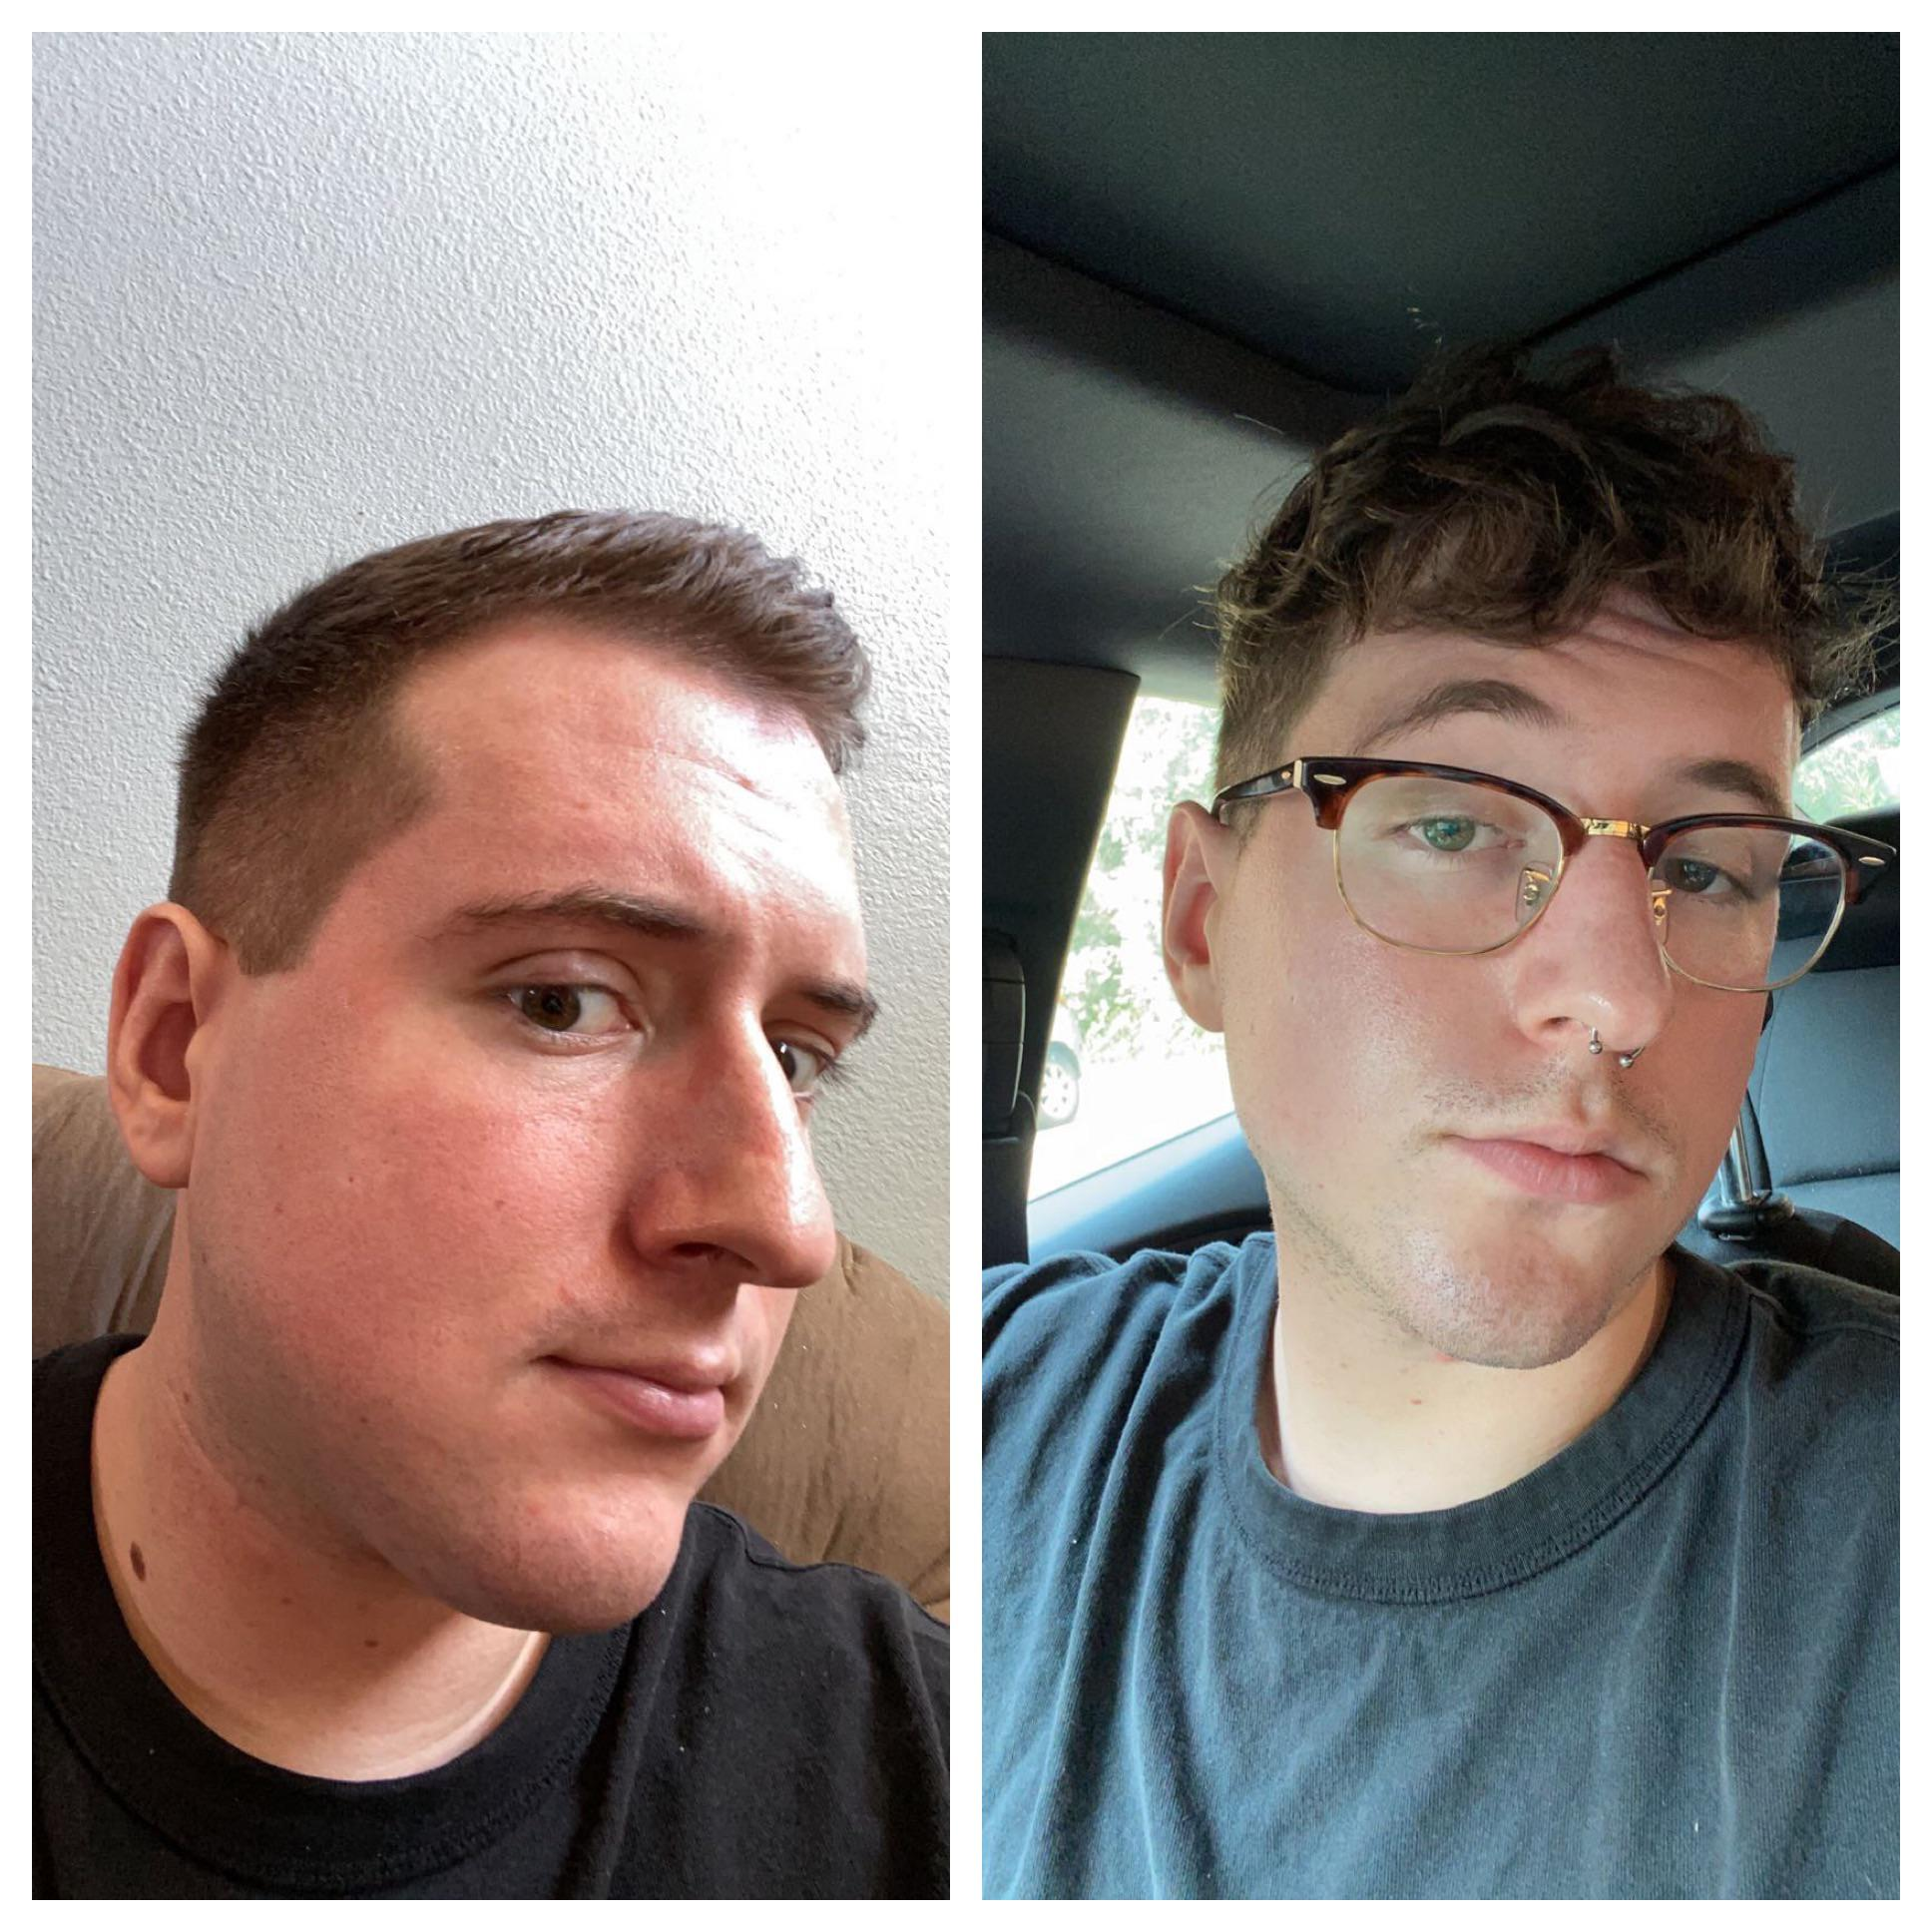 6 feet 2 Male Before and After 30 lbs Fat Loss 240 lbs to 210 lbs